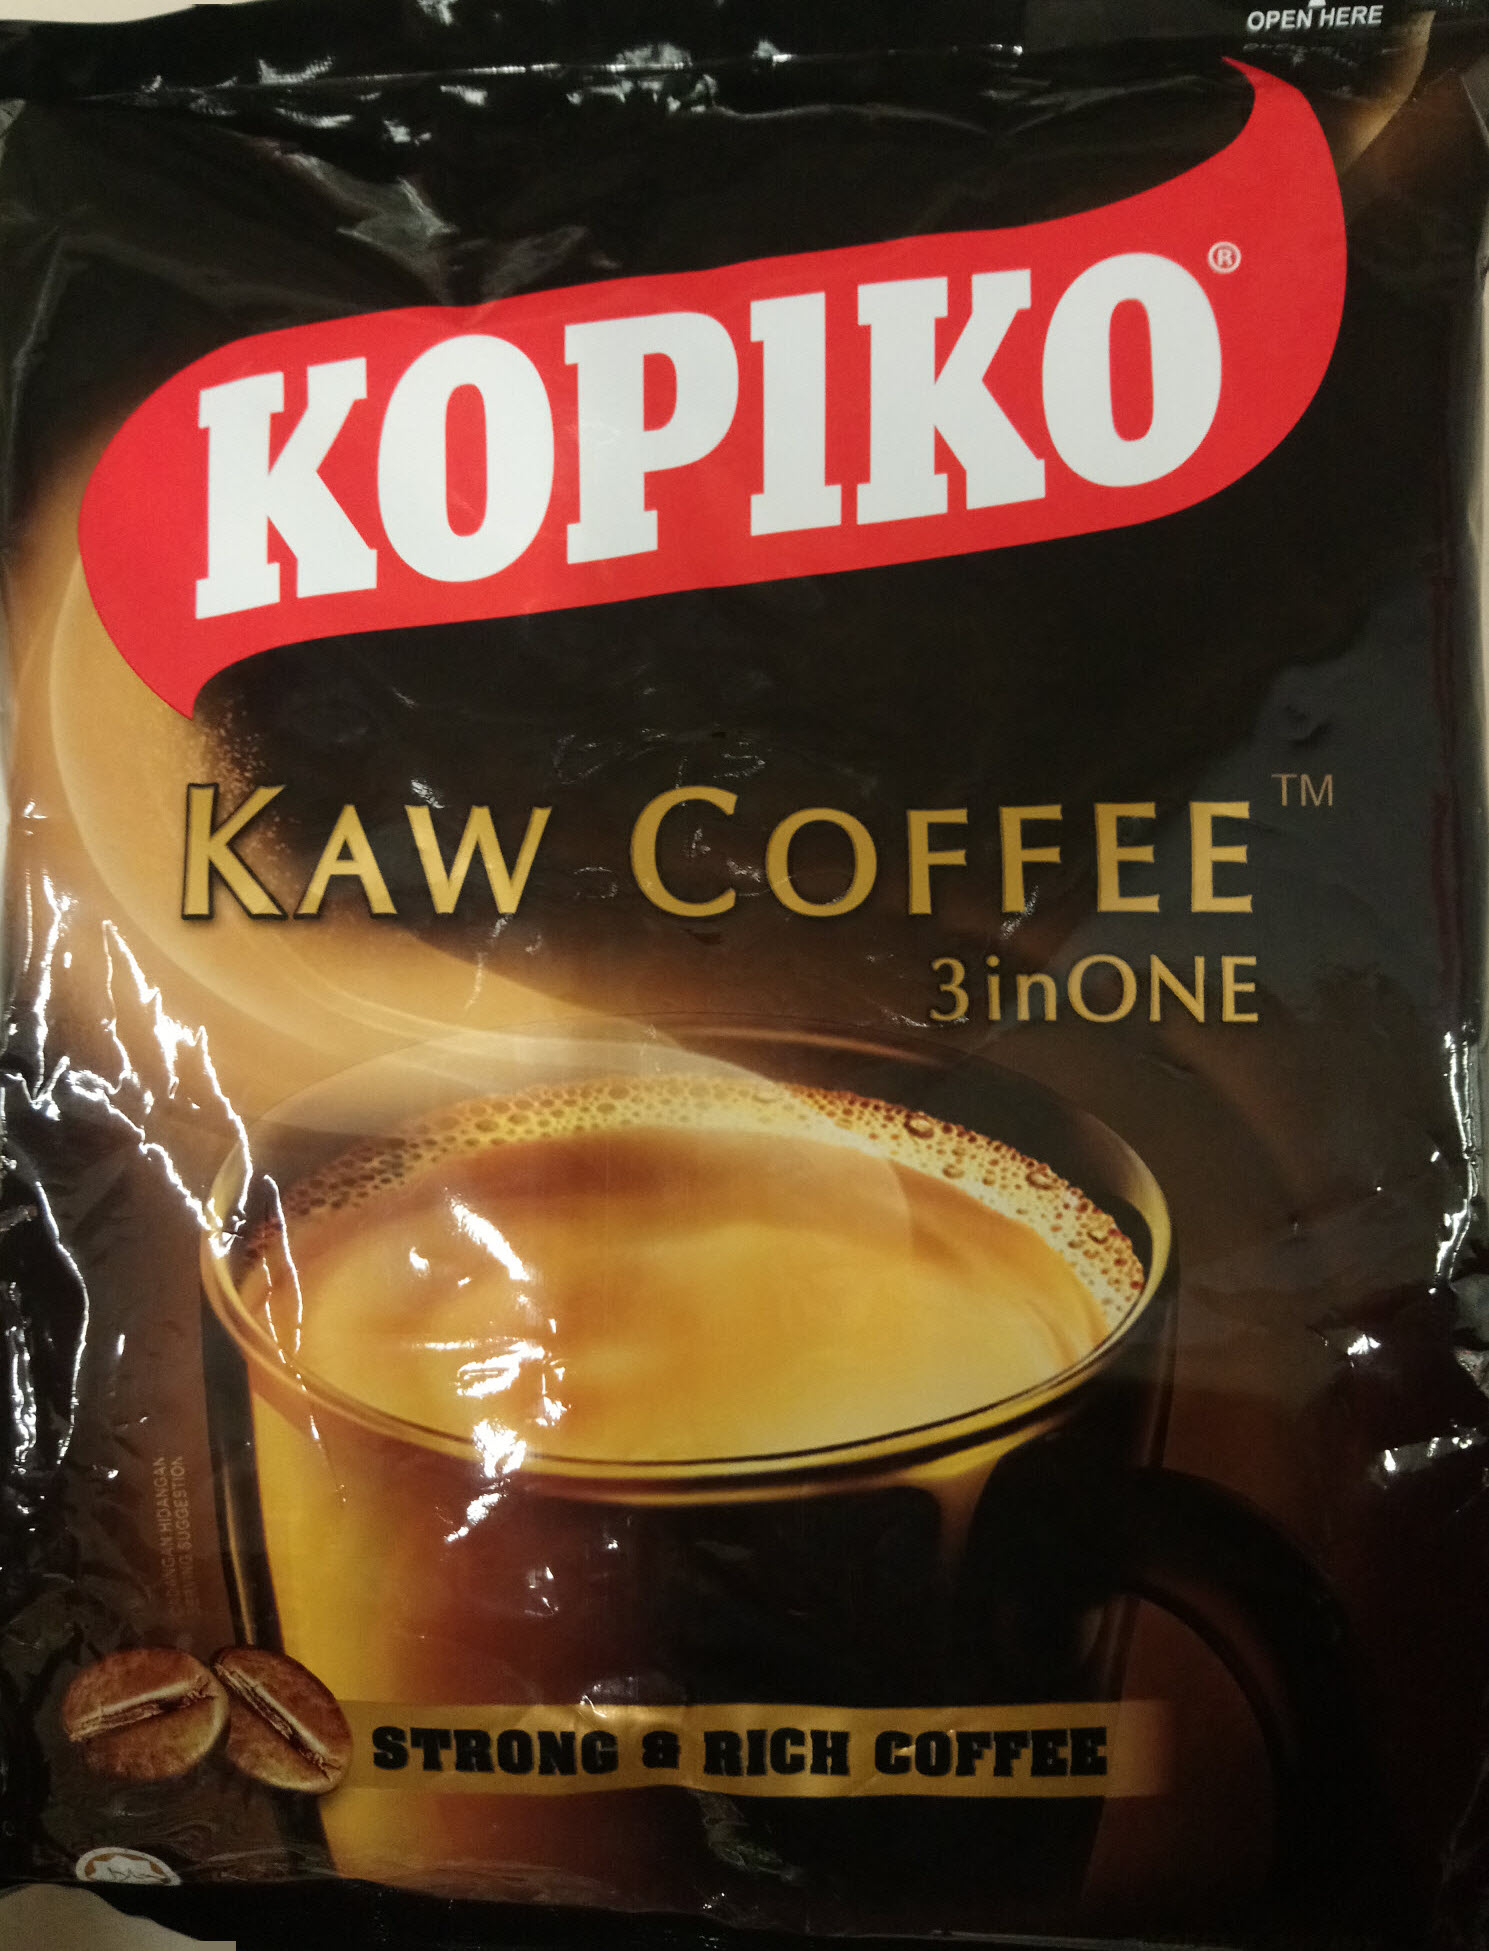 Kopiko Kaw Coffee Strong and Rich Instant Kopi 3 IN 1 (20g x27s)